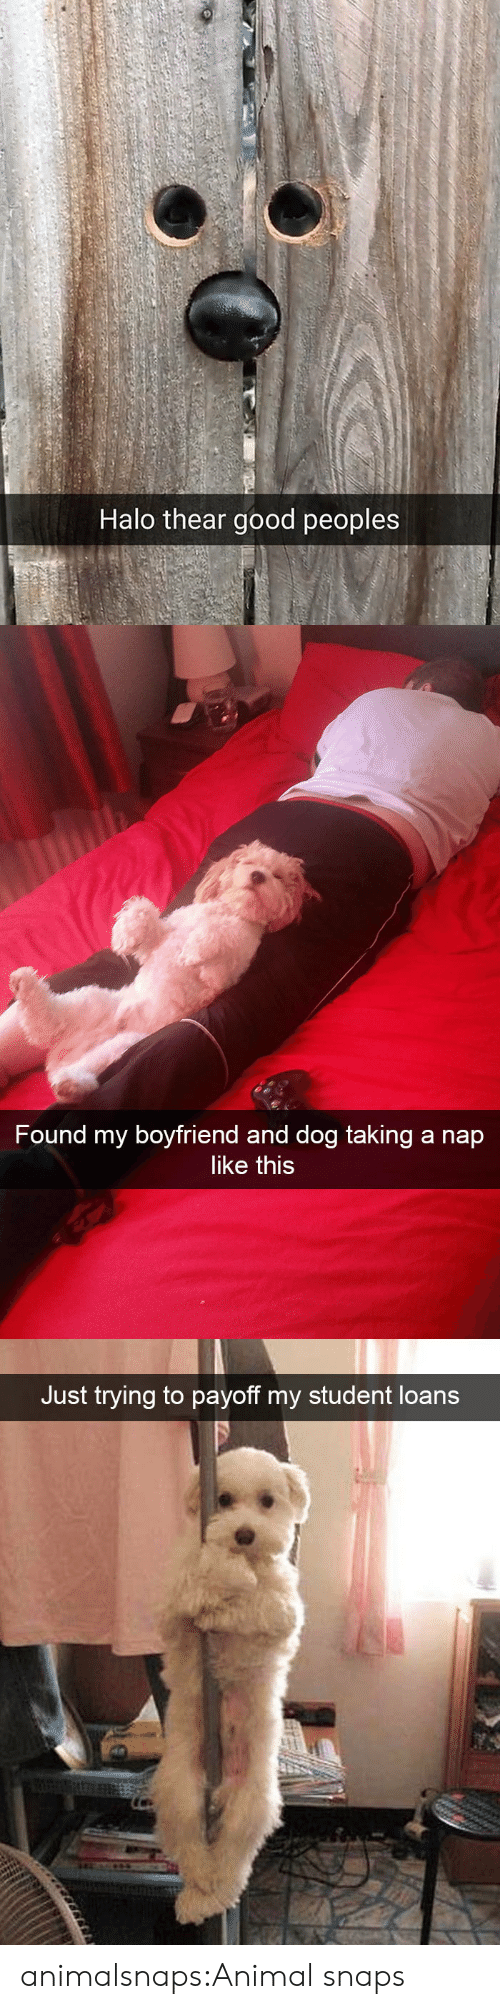 Loans: Halo thear good peoples   Found my boyfriend and dog taking a nap  like this   Just trying to payoff my student loans animalsnaps:Animal snaps